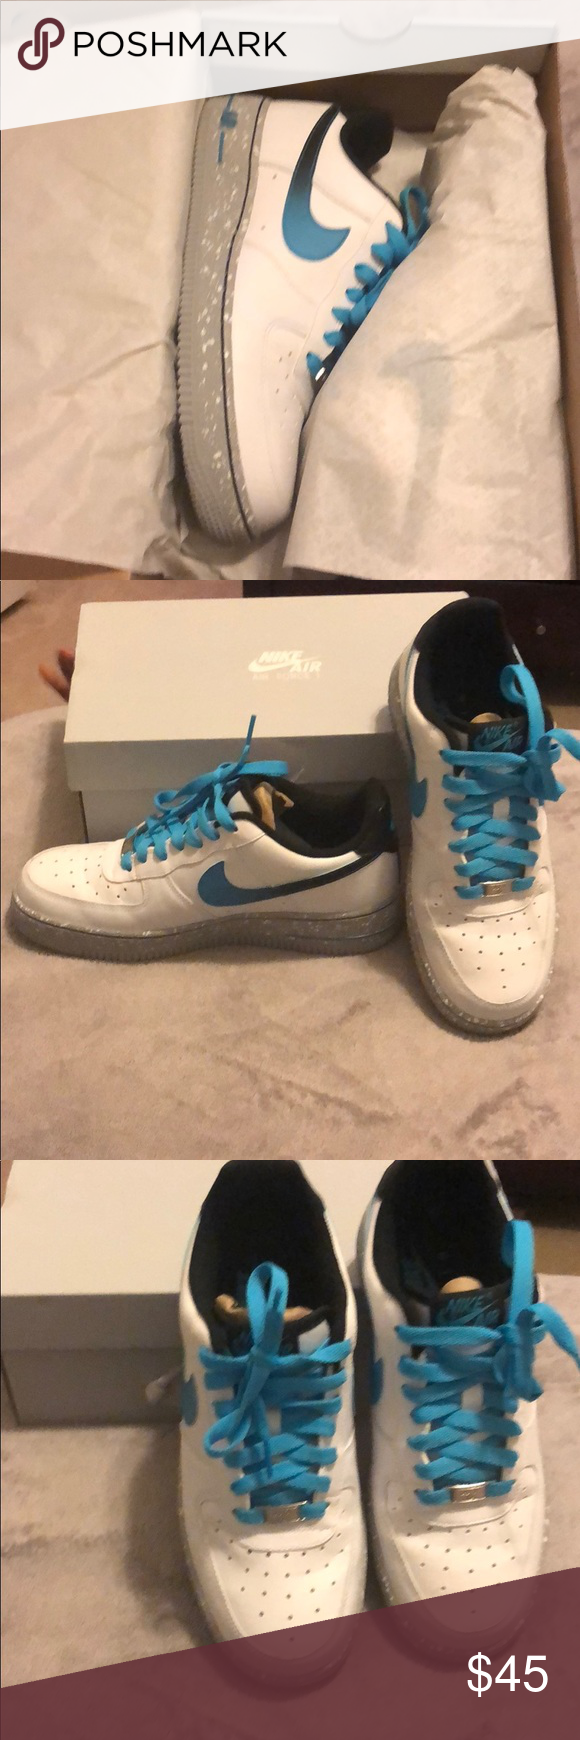 c2d7063d7acd0 Nike Air Force 1 Air Force 1 Color: White, Black, some Turquoise Size: 7  Youth (boys) fits women's 8/8.5 Worn Once - Like New Nike Shoes Athletic  Shoes